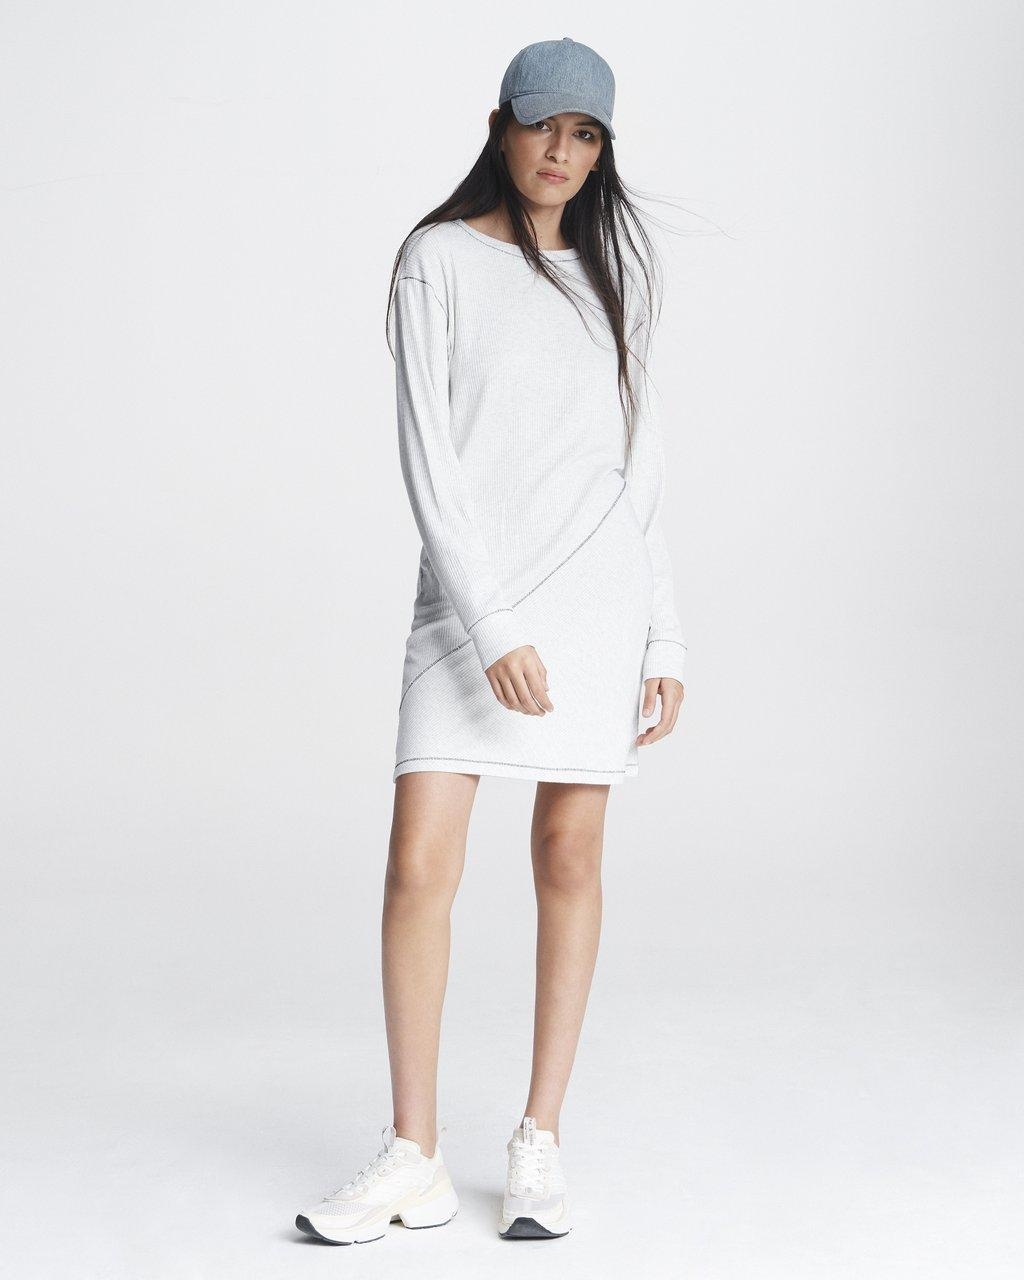 The Knit Ribbed Dress